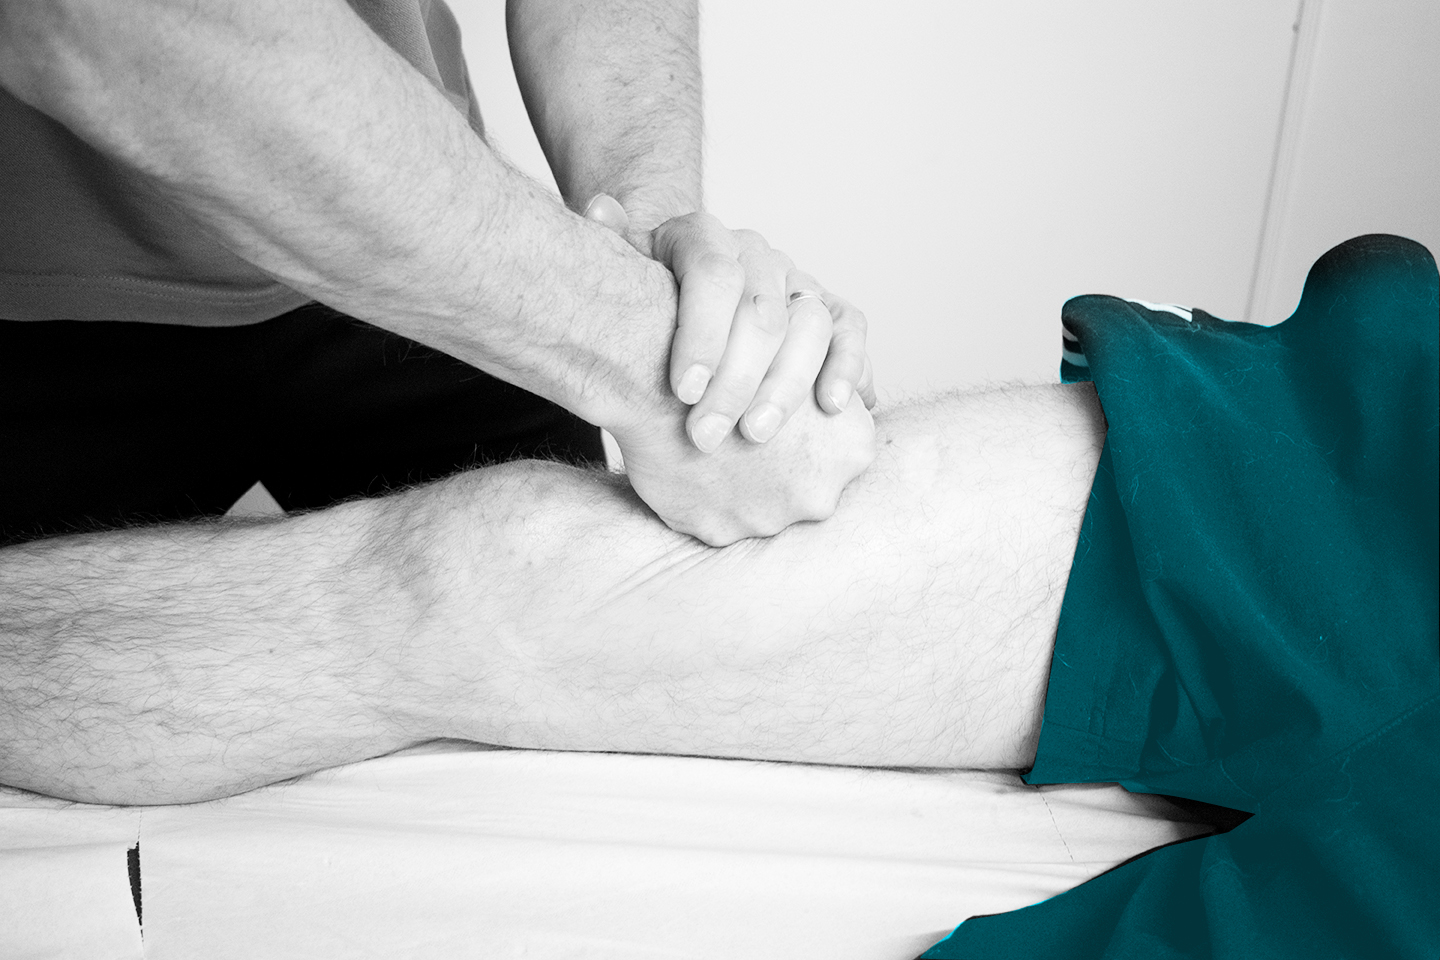 Physio Troy doing Physical Therapy/Physiotherapy massage. Links to Sports Massage explanation and booking.